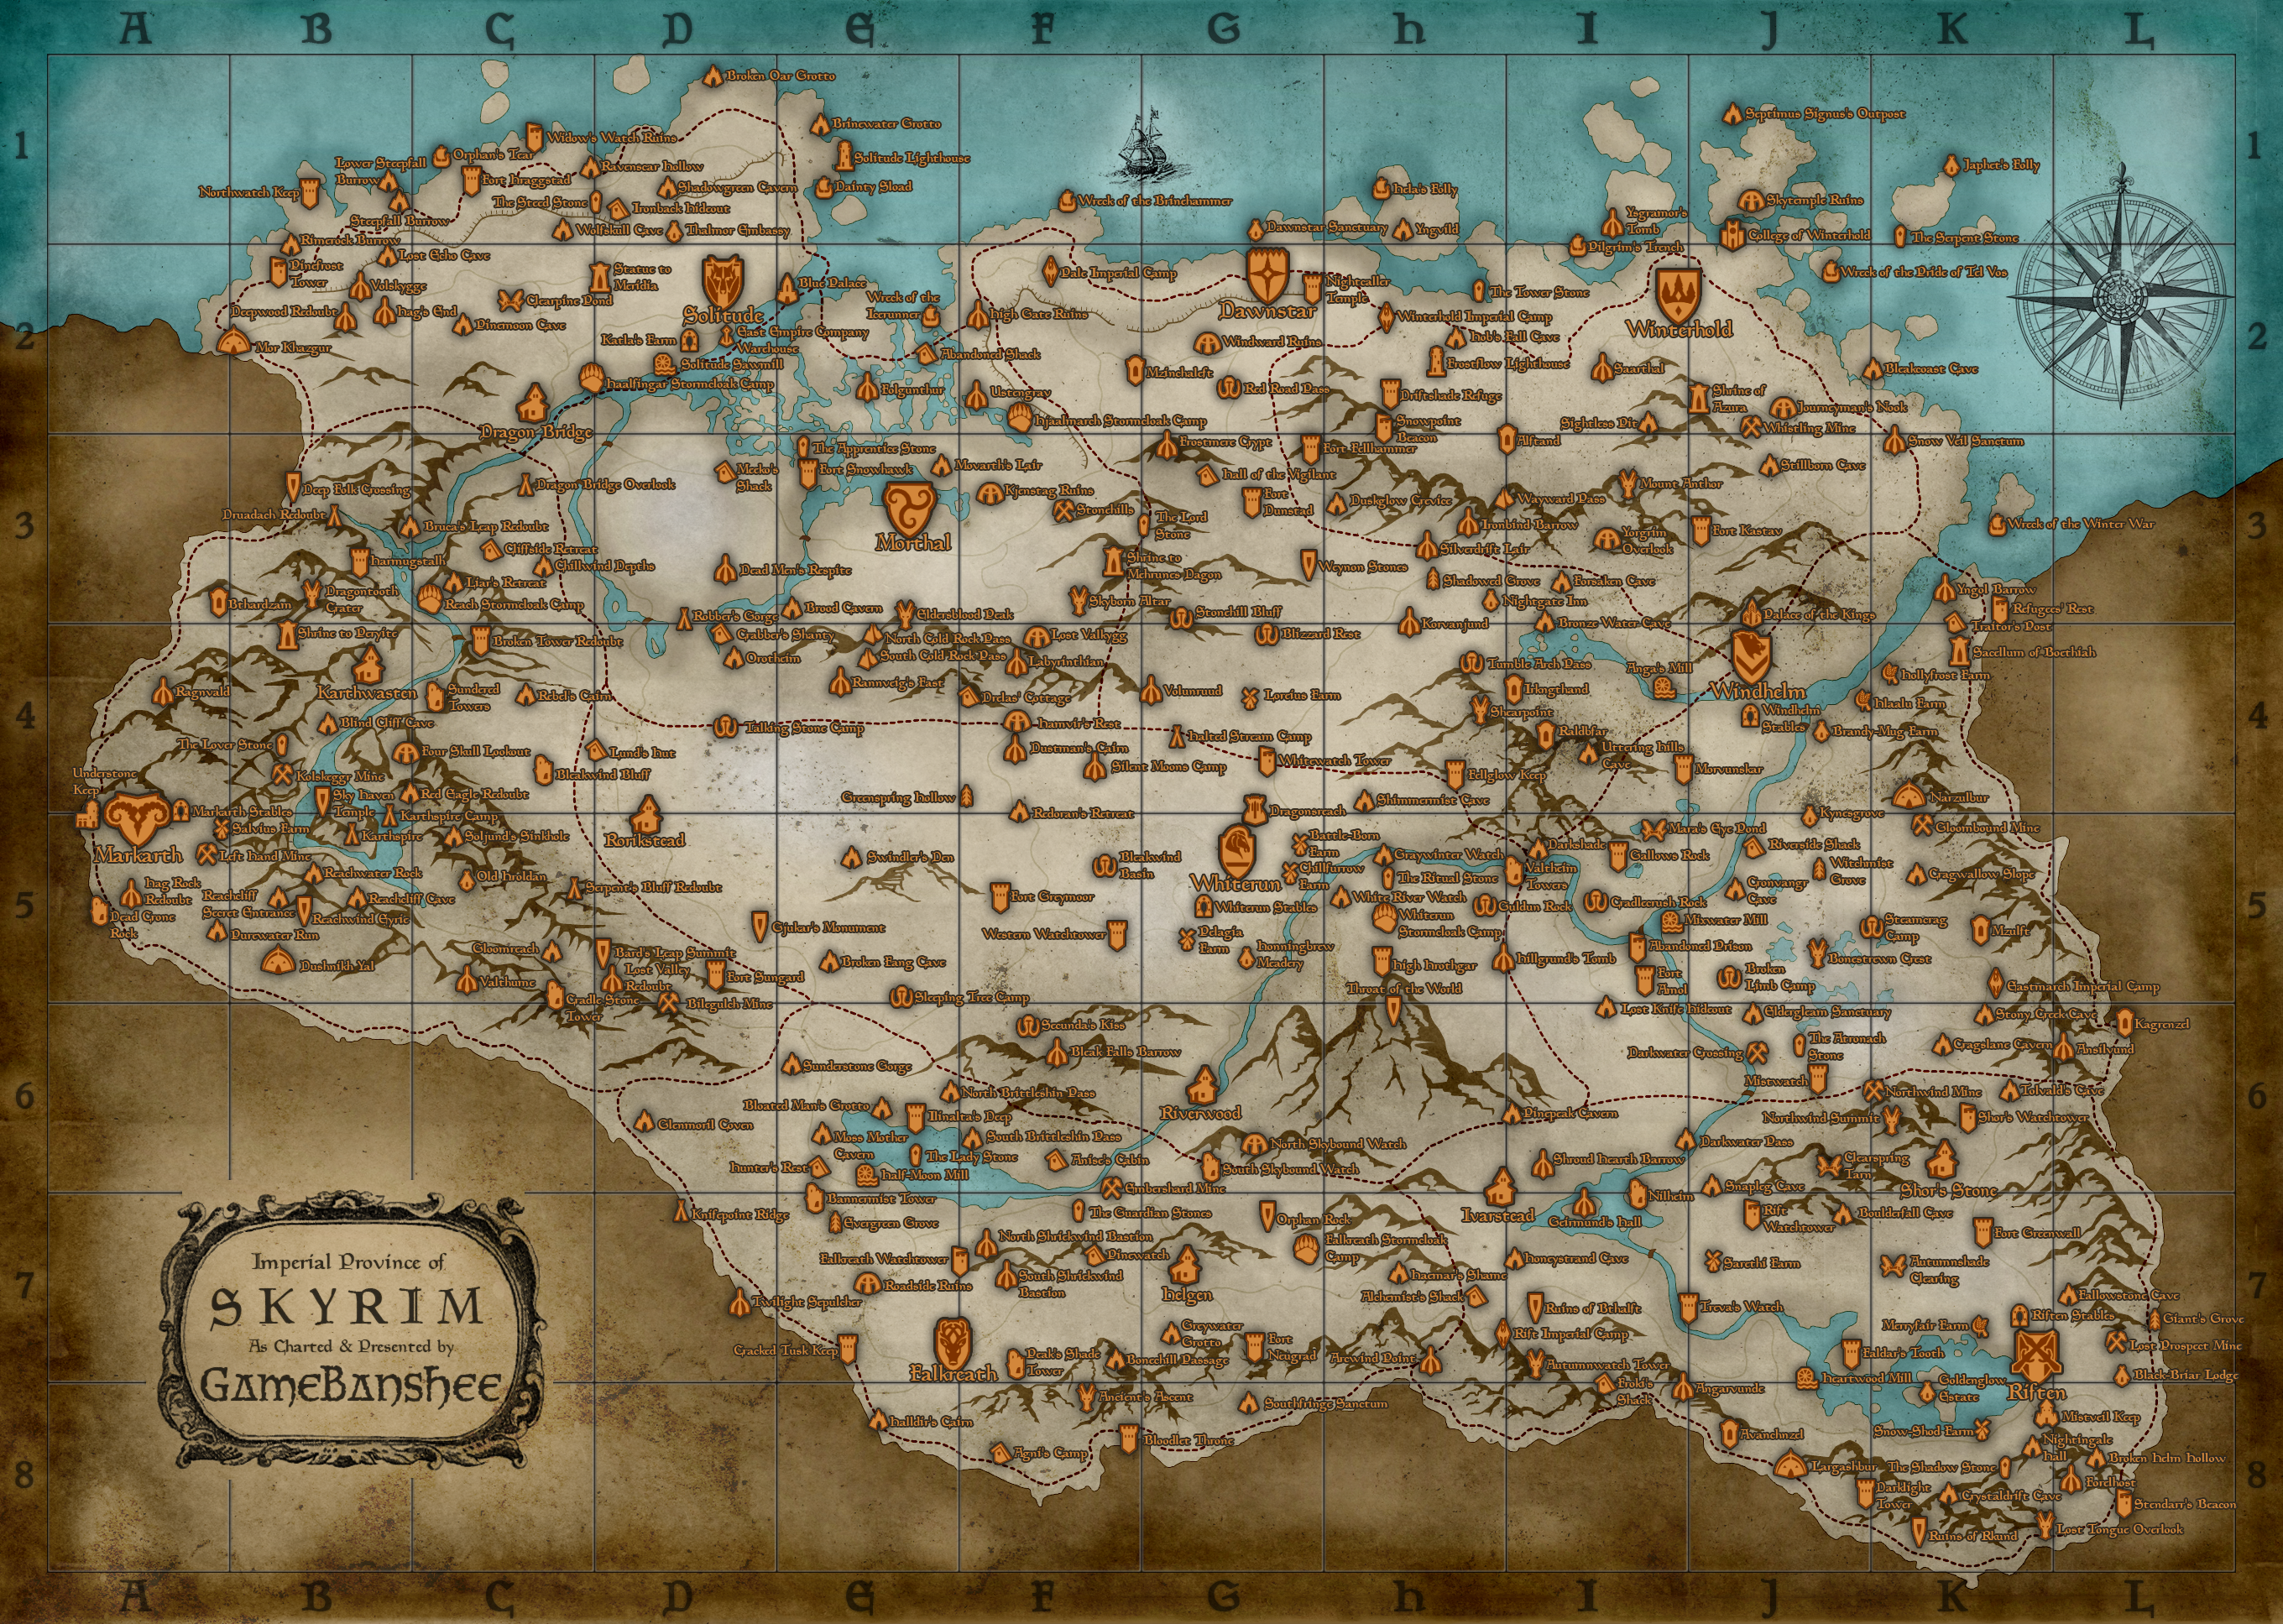 Skyrim World Map Map (Skyrim)/Locations | Elder Scrolls | FANDOM powered by Wikia Skyrim World Map